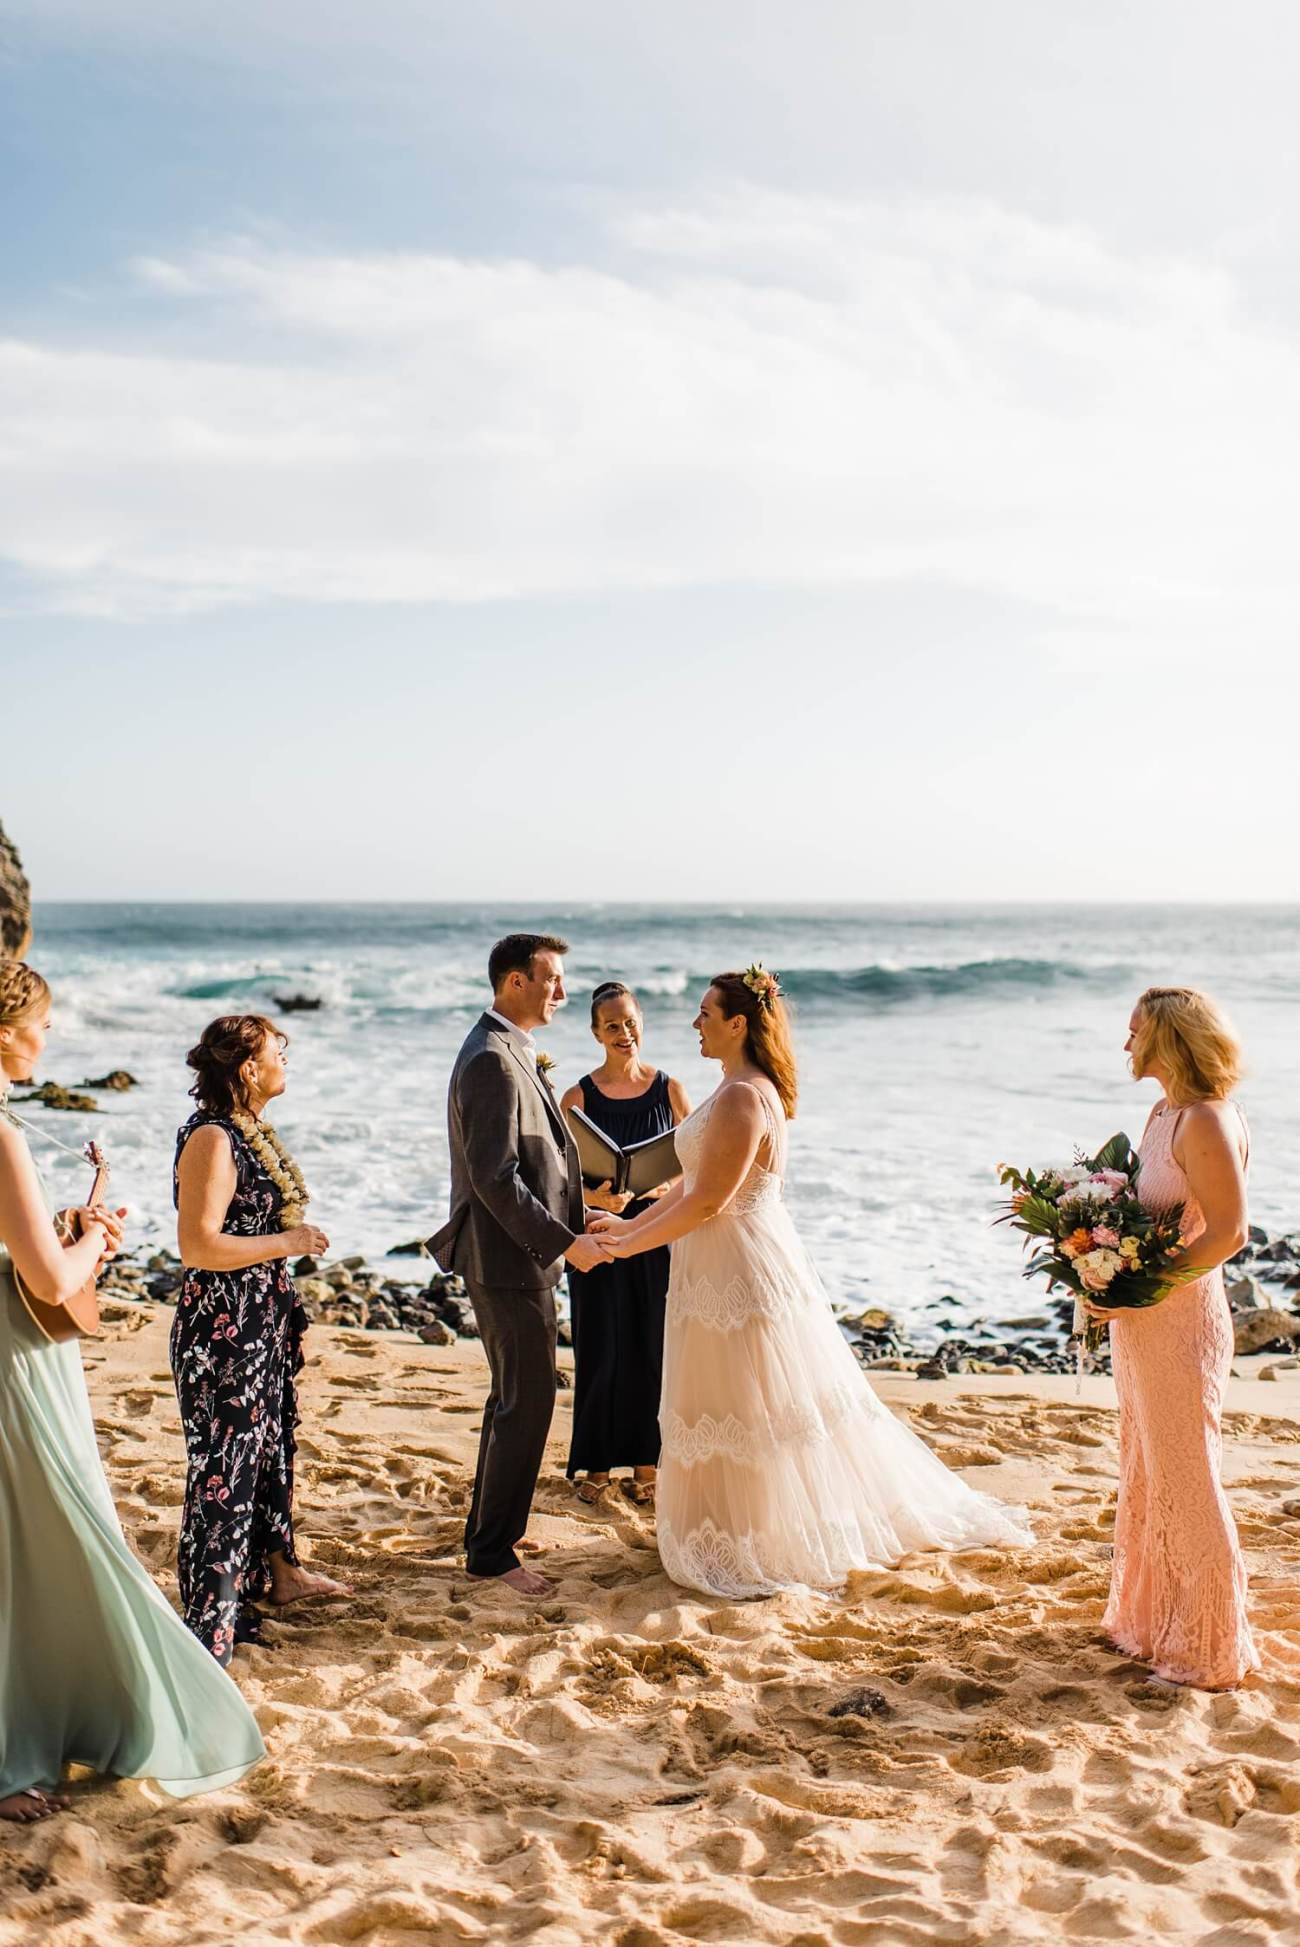 adventure elopement,adventure elopement photographer,elope,elope on kauai,elope to hawaii,eloping,hawaii elopement,kauai elopement,kauai wedding. hawaii wedding,tropical wedding,